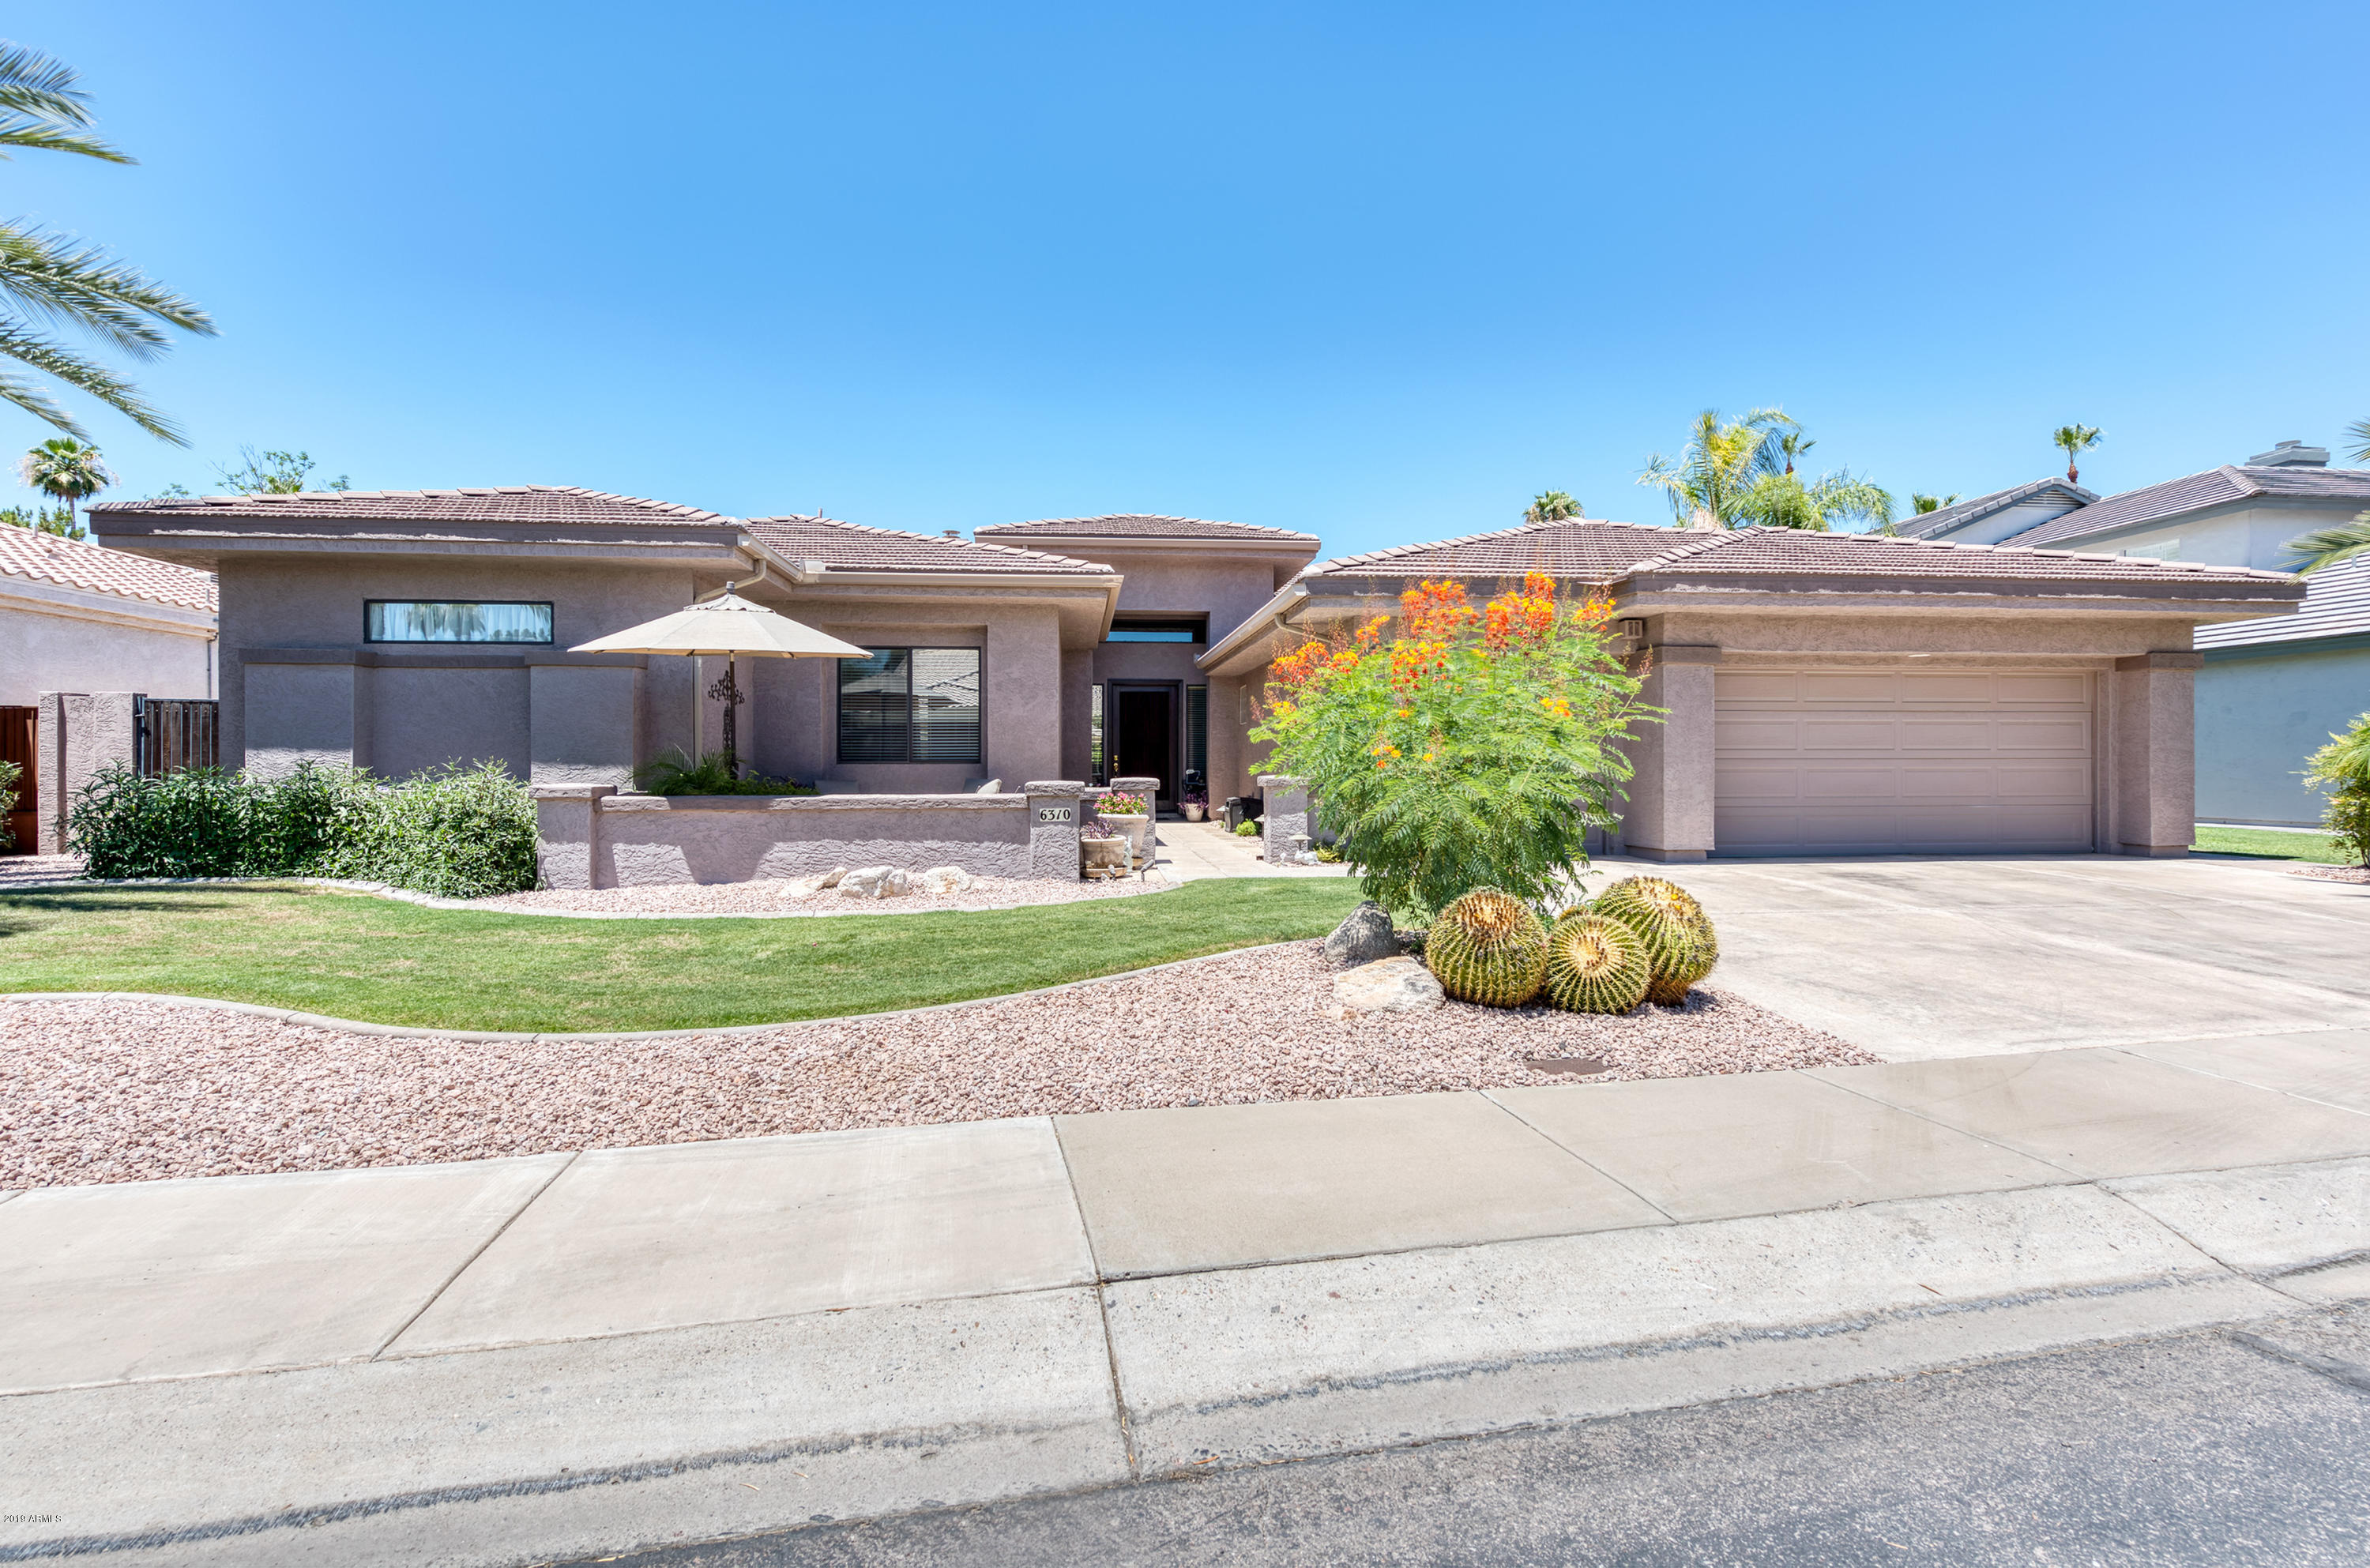 Photo of 6310 N 4th Drive, Phoenix, AZ 85013